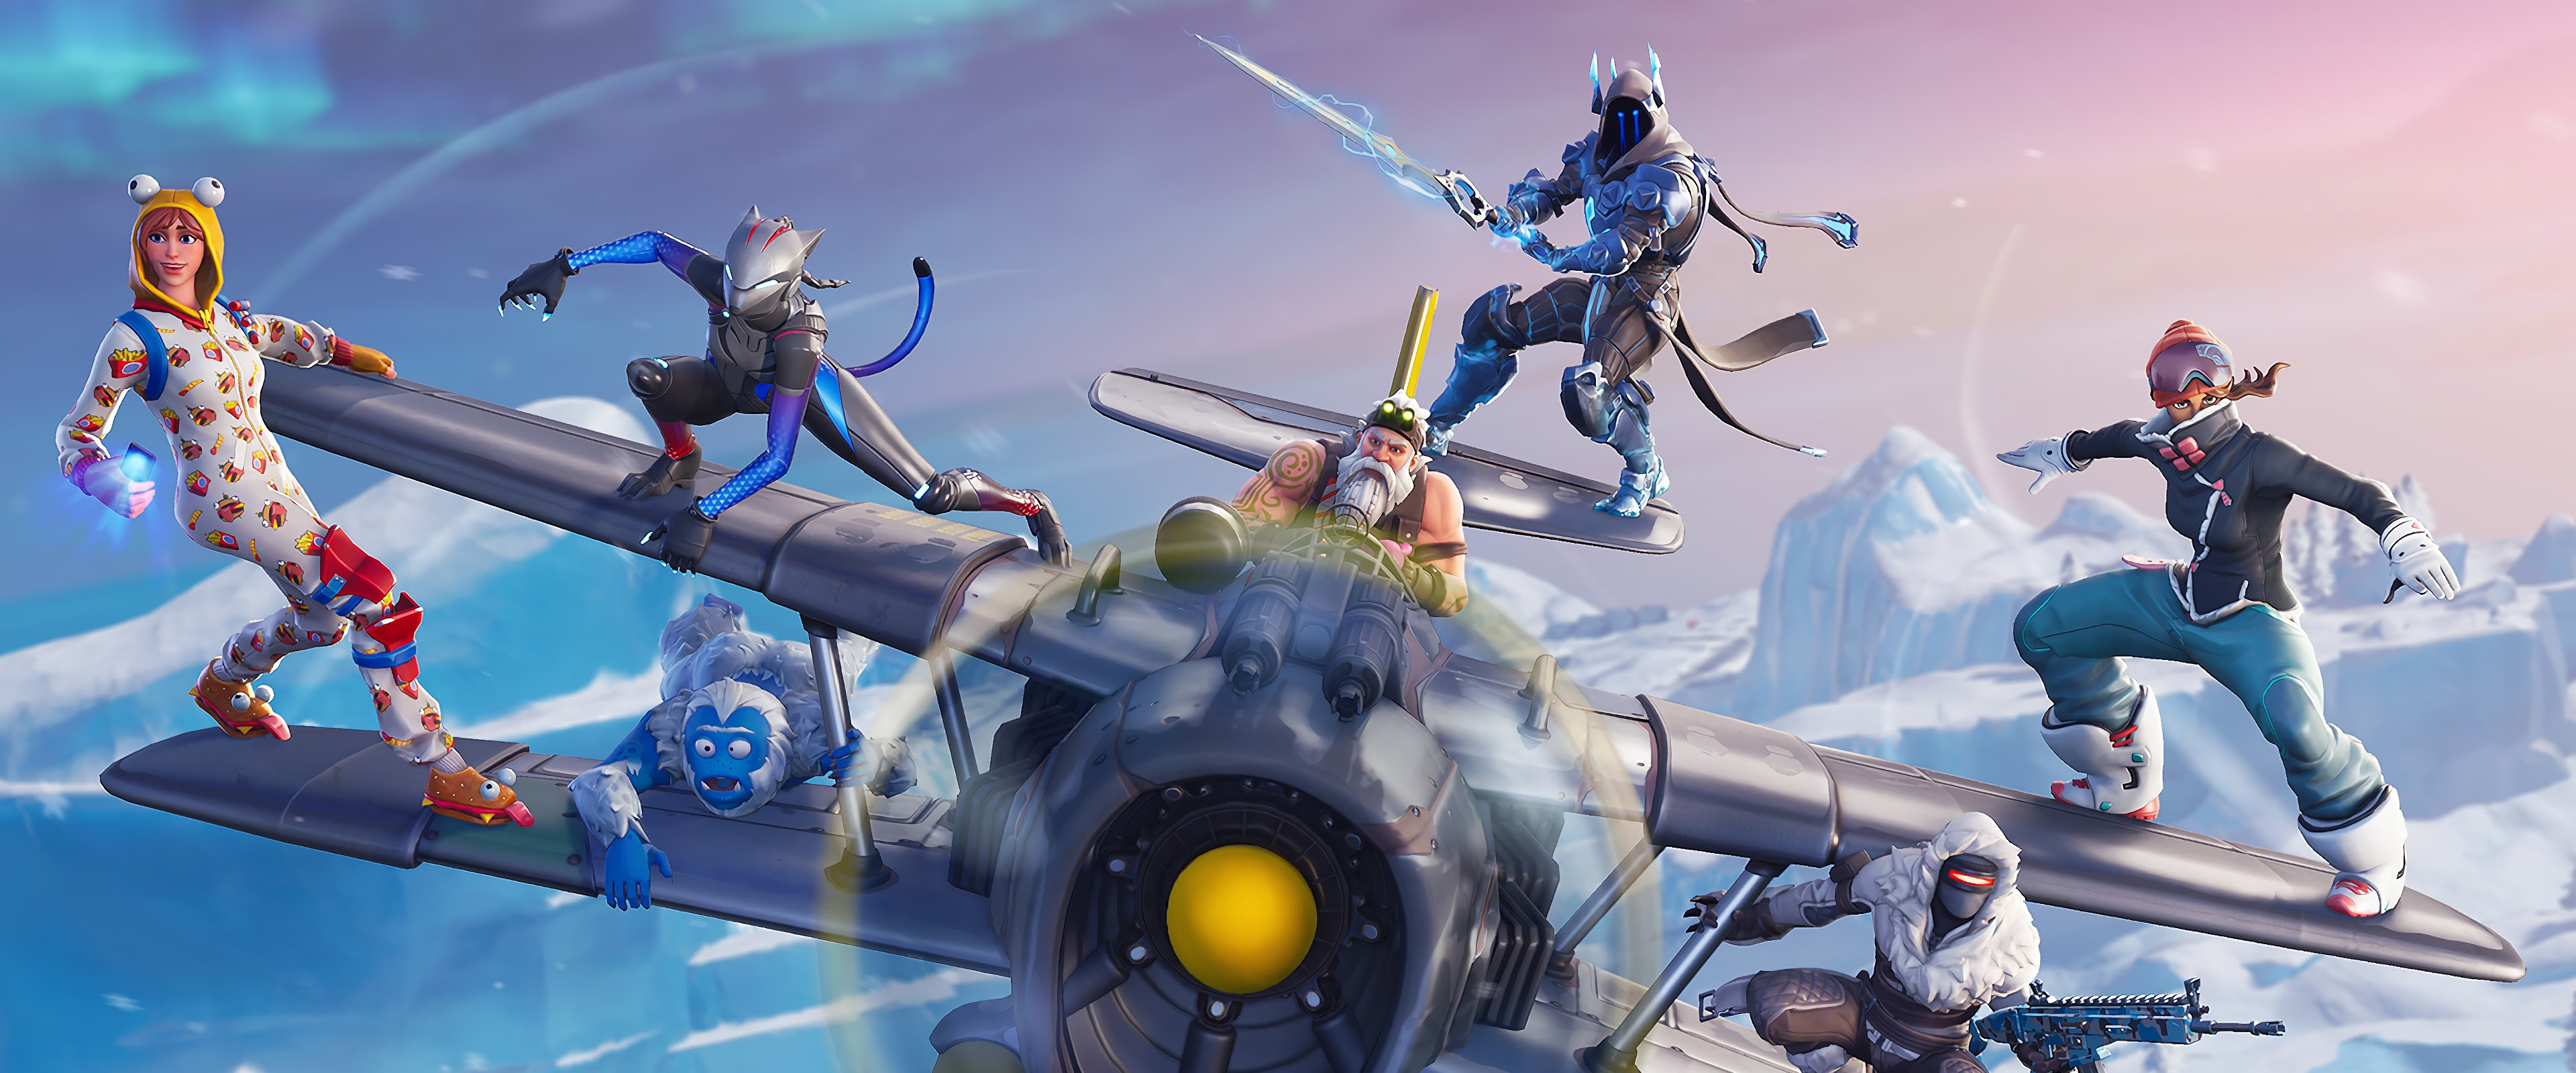 Download 1440x2560 Wallpaper All Characters Video Game Fortnite